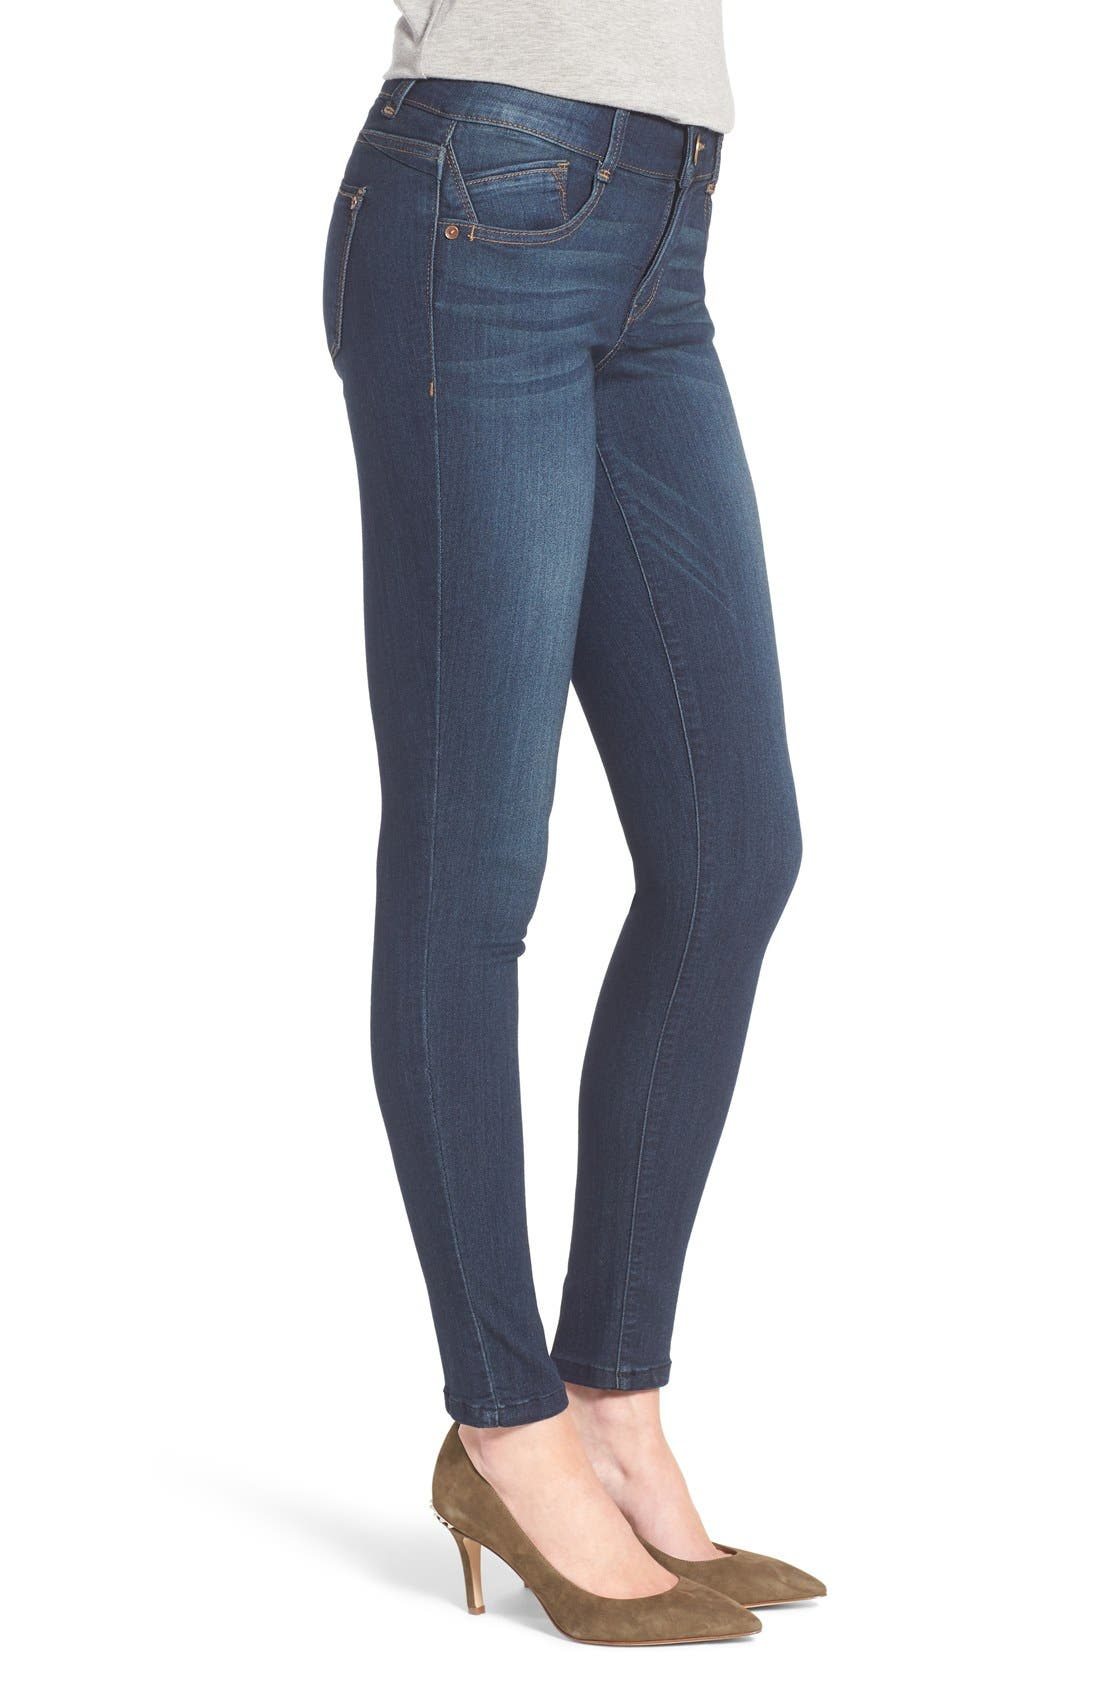 Alternate Image 3  - Wit & Wisdom 'Ab-solution' Stretch Skinny Jeans (Nordstrom Exclusive)